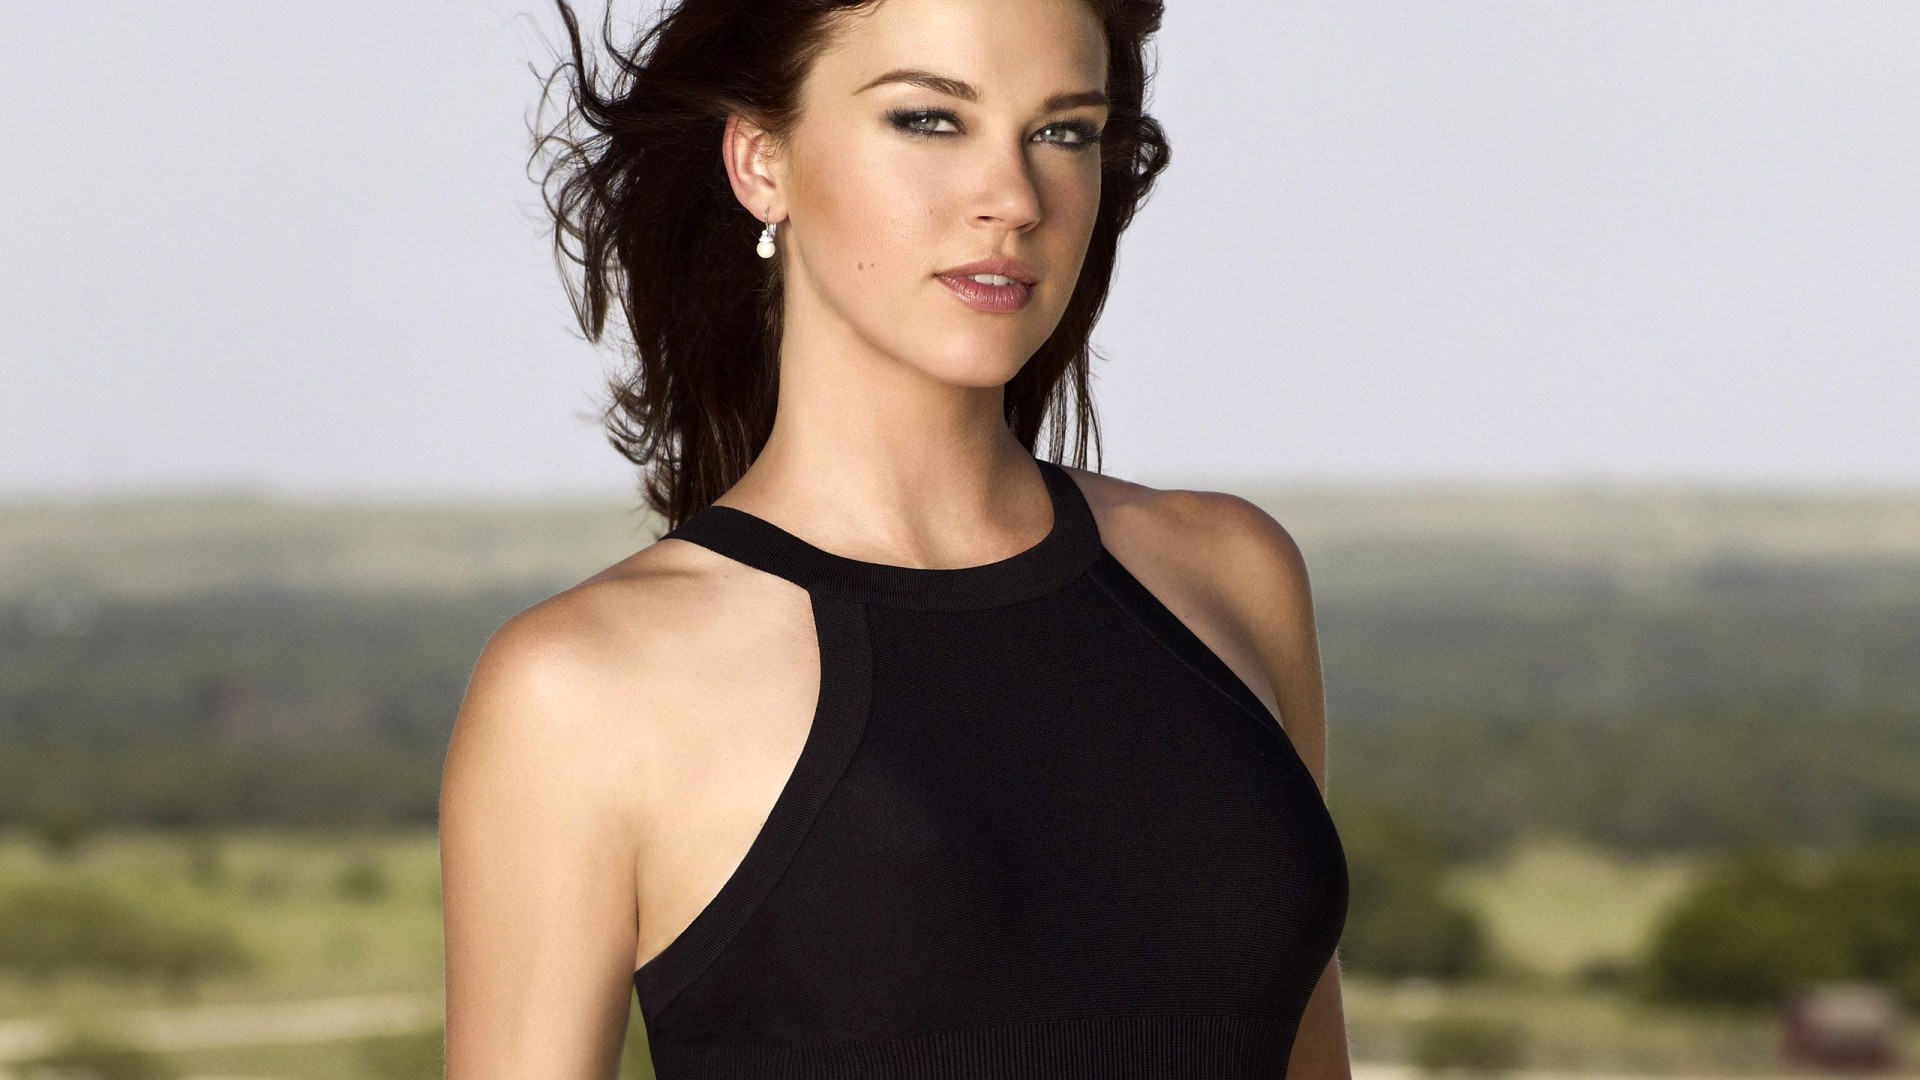 2013 Adrianne Palicki - Wallpaper, High Definition, High ...